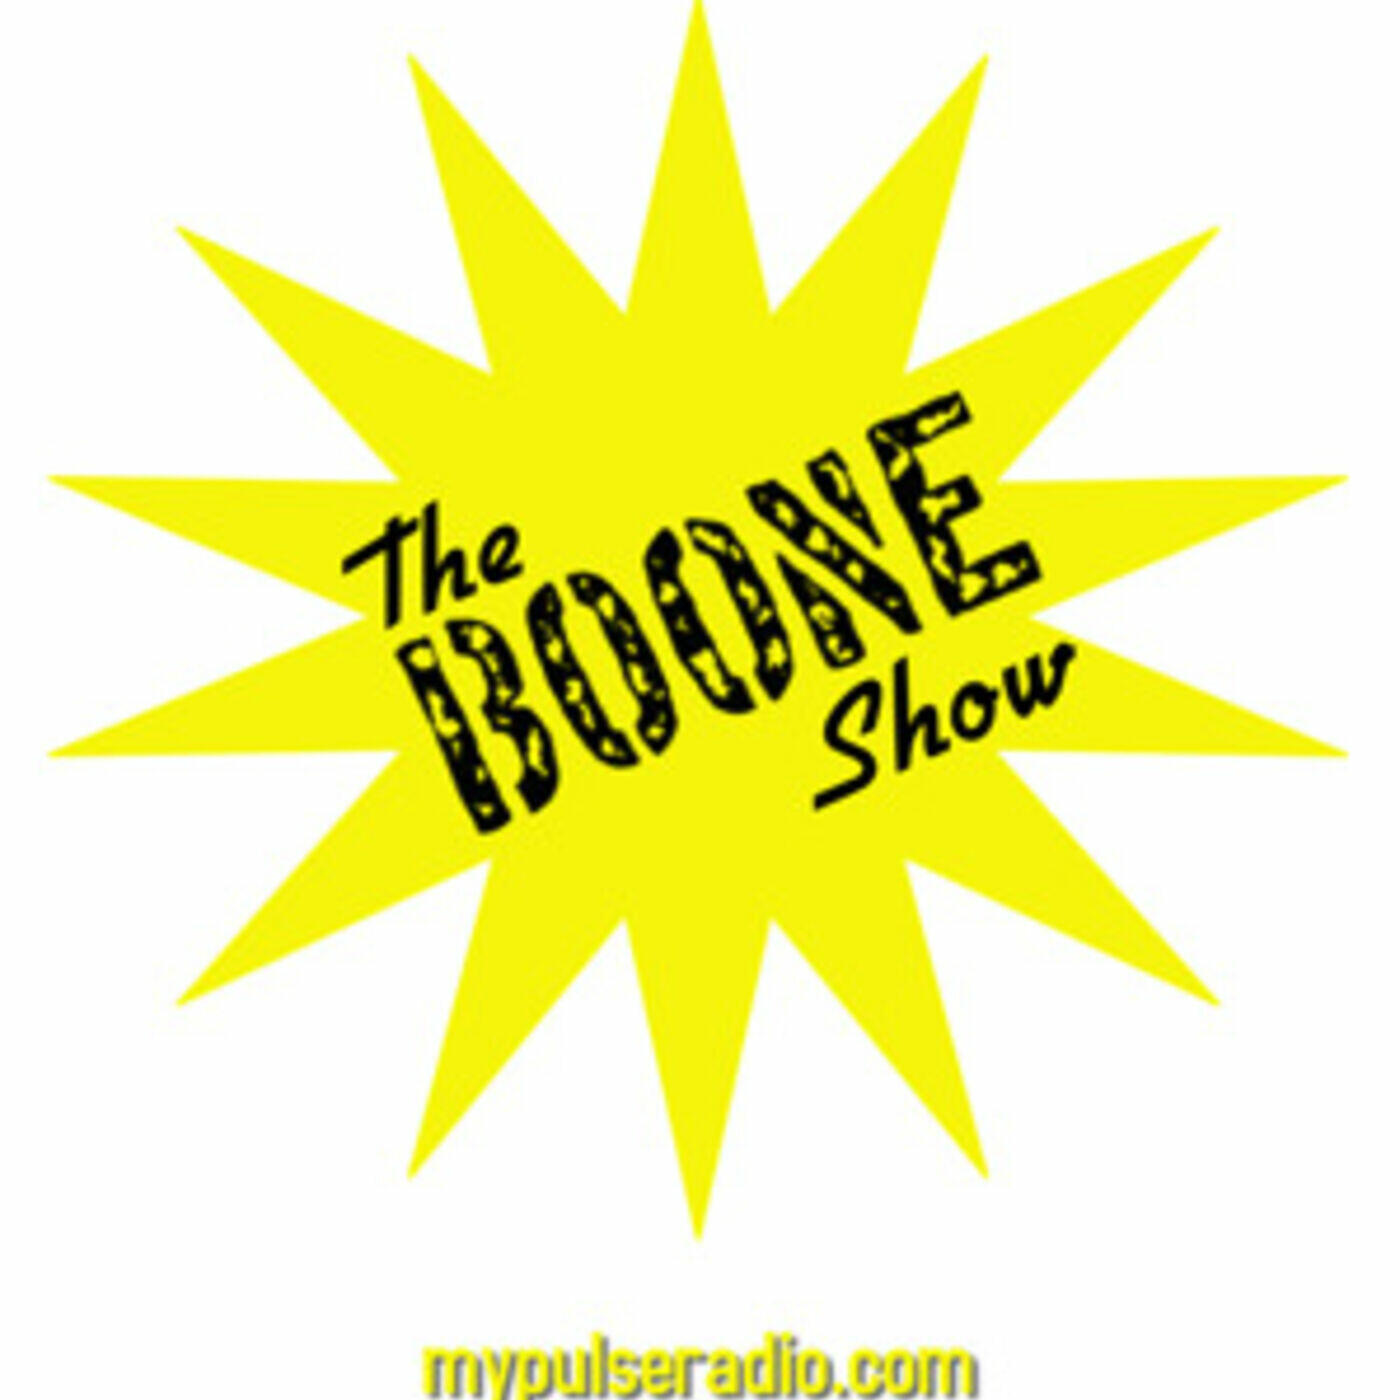 The Boone Show